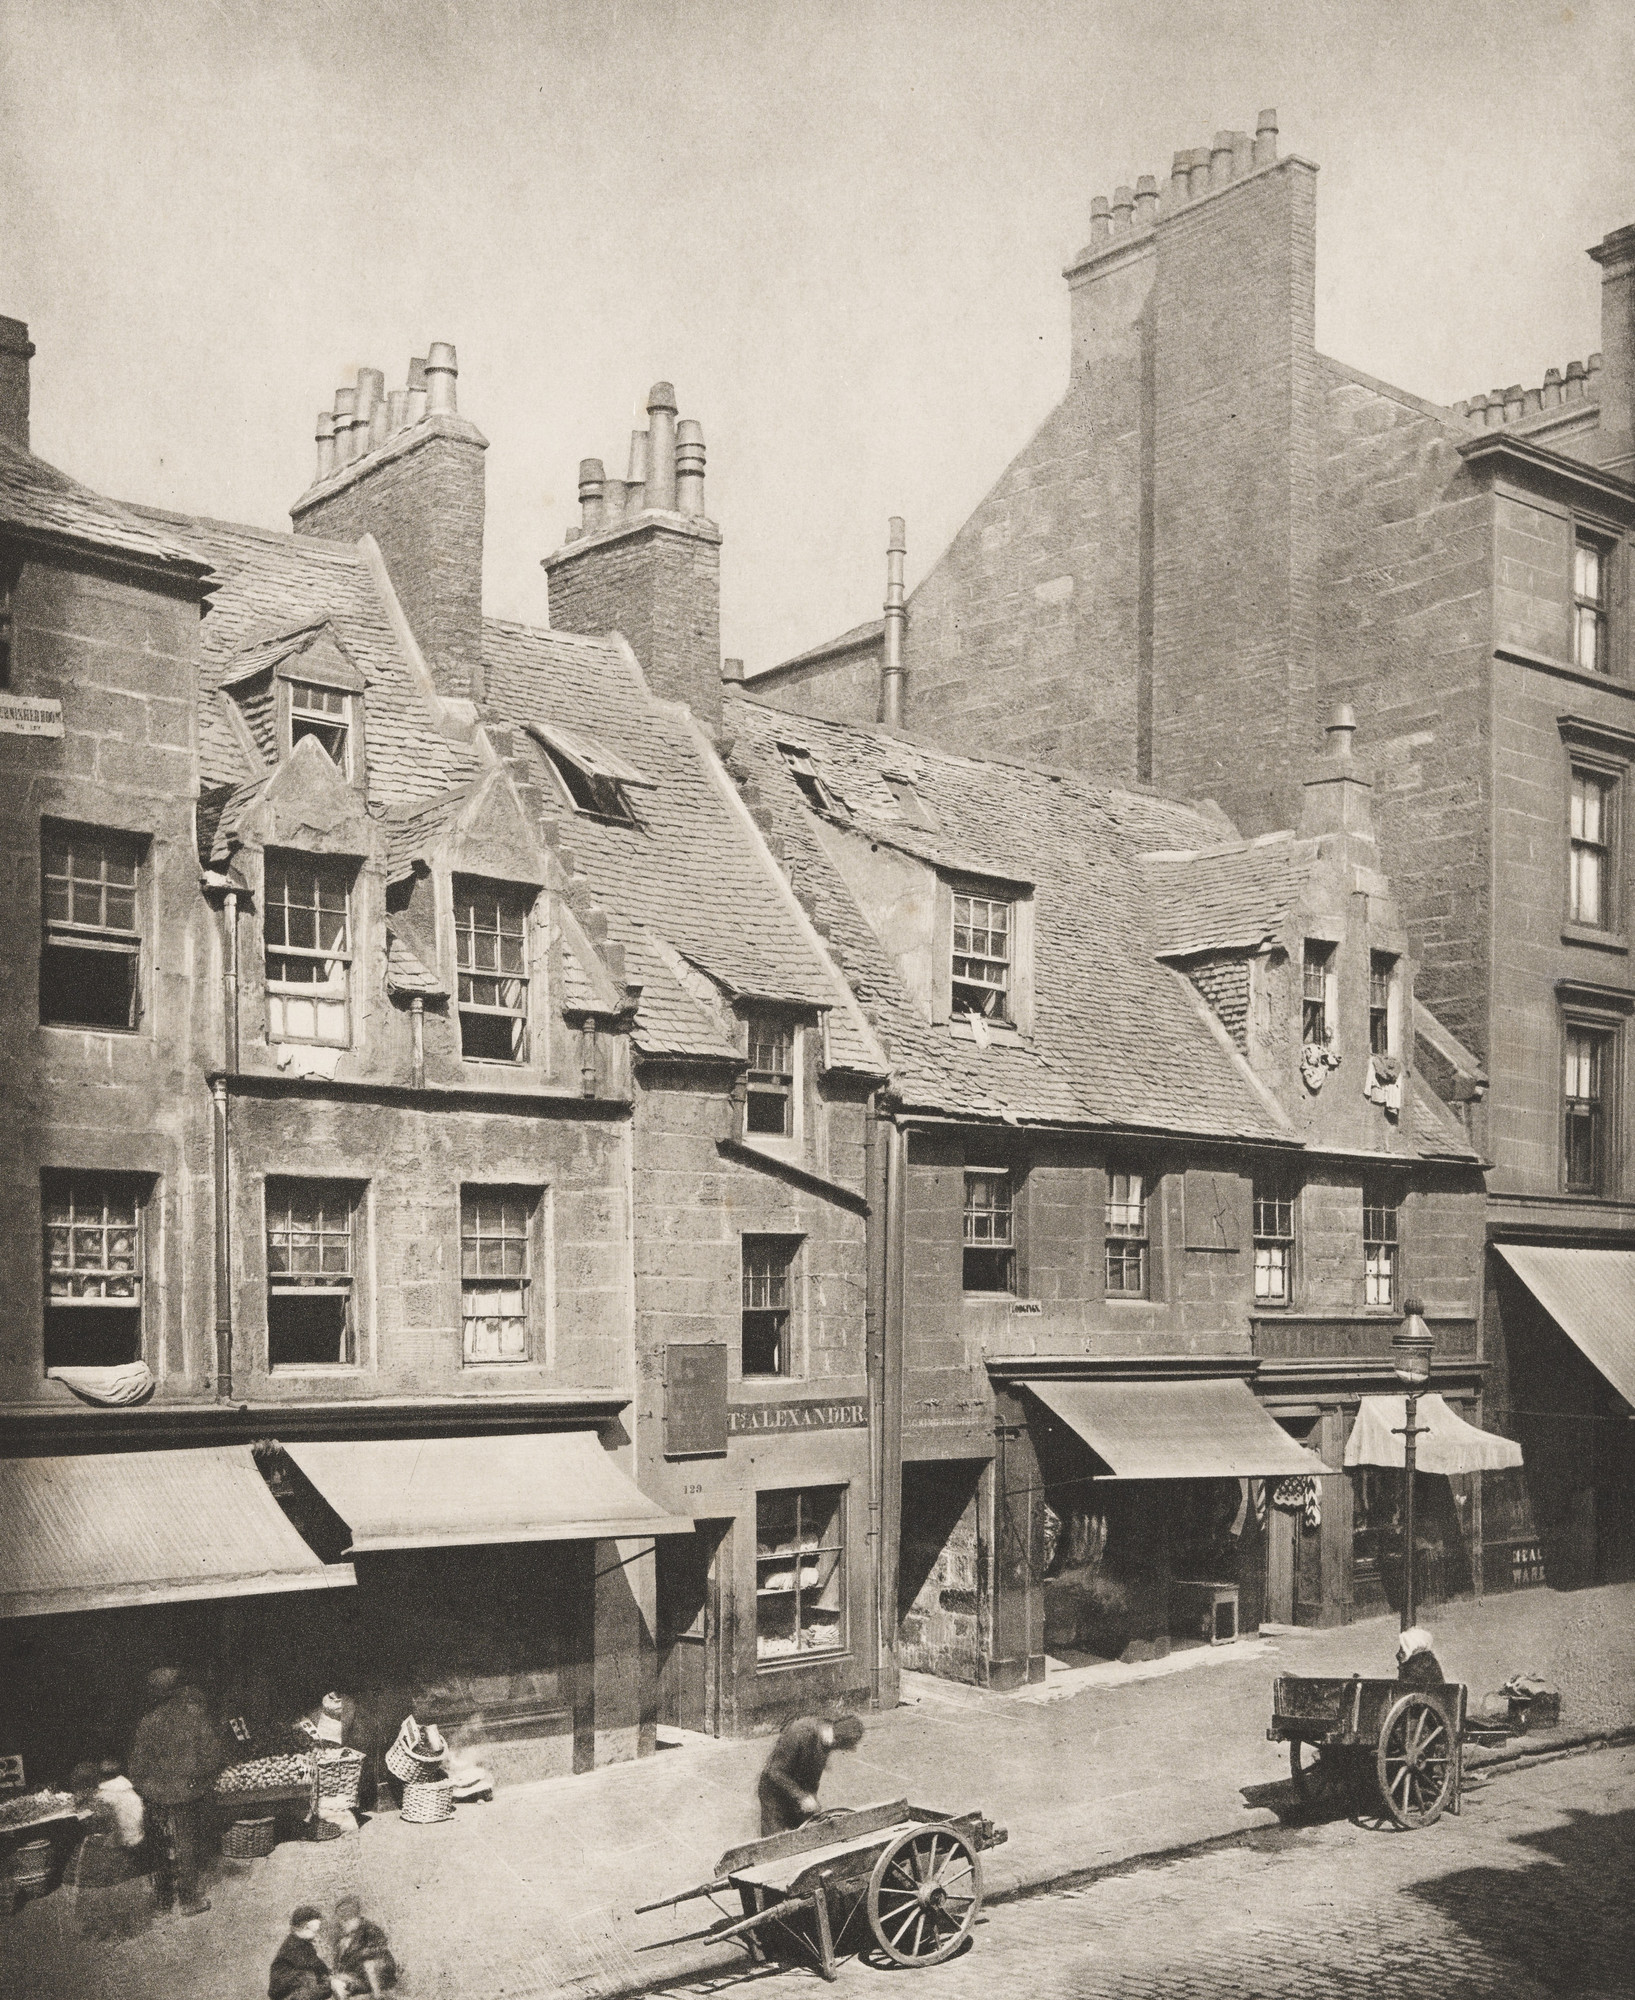 Thomas Annan. Gallowgate. 1868